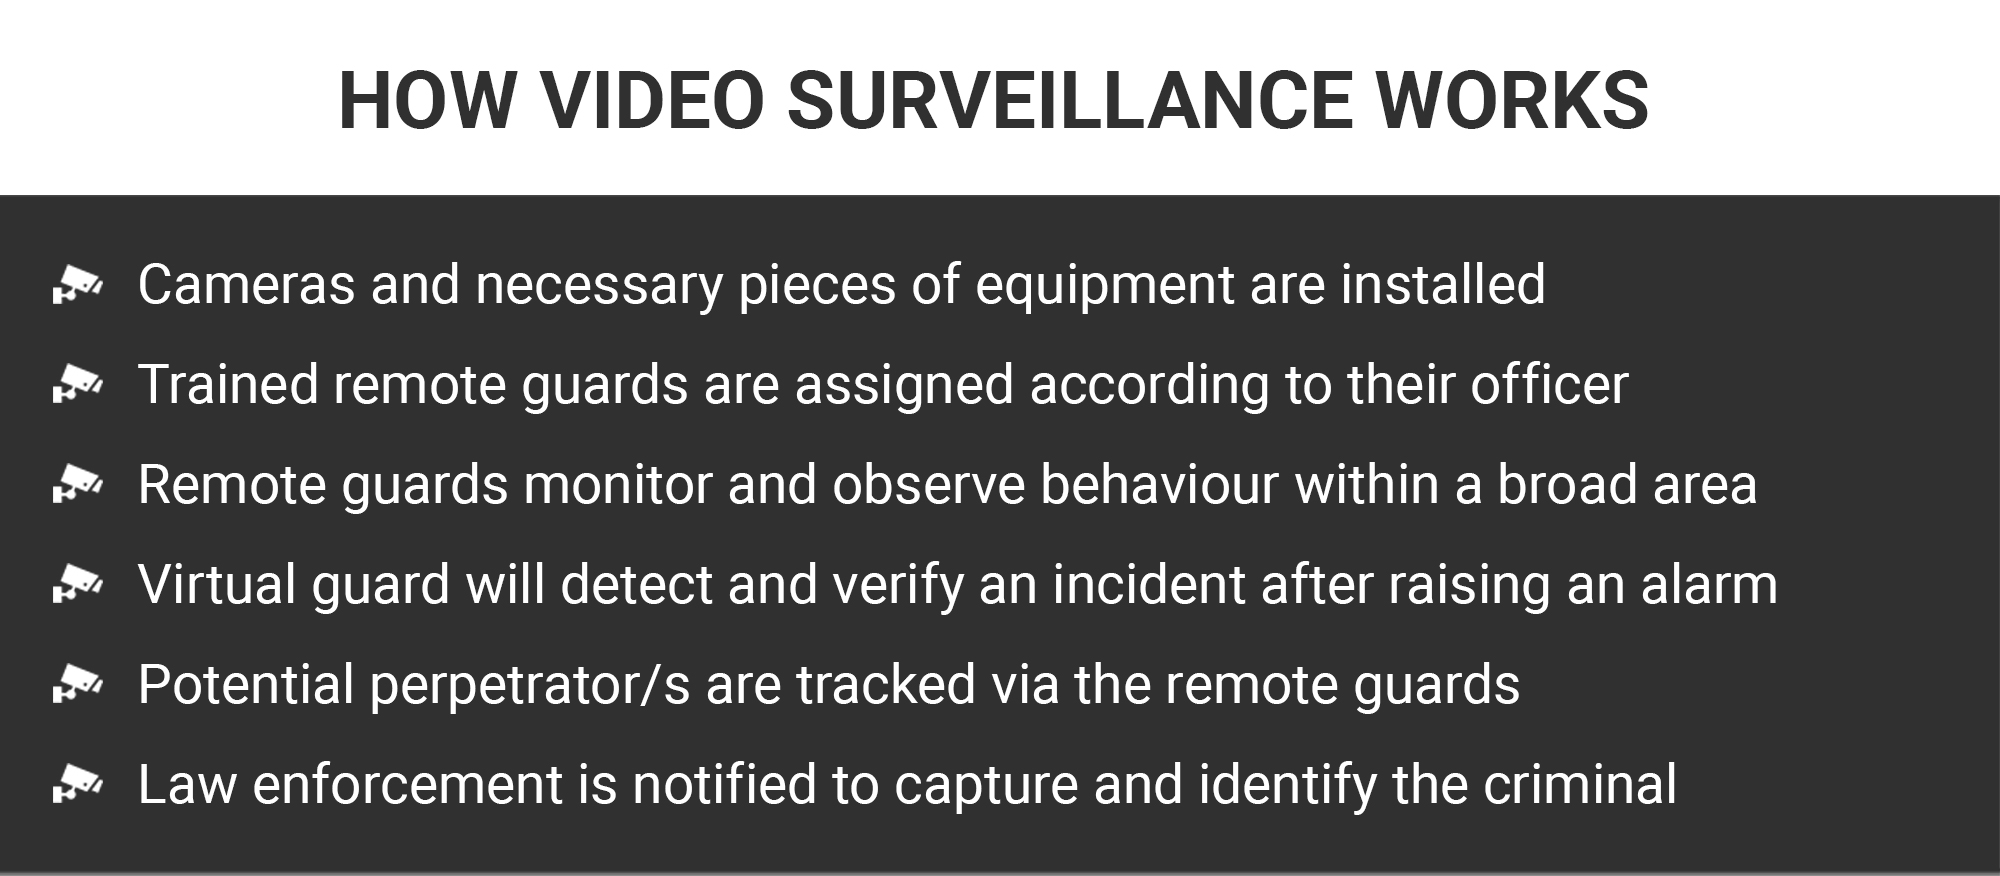 How a video surveillance system works?